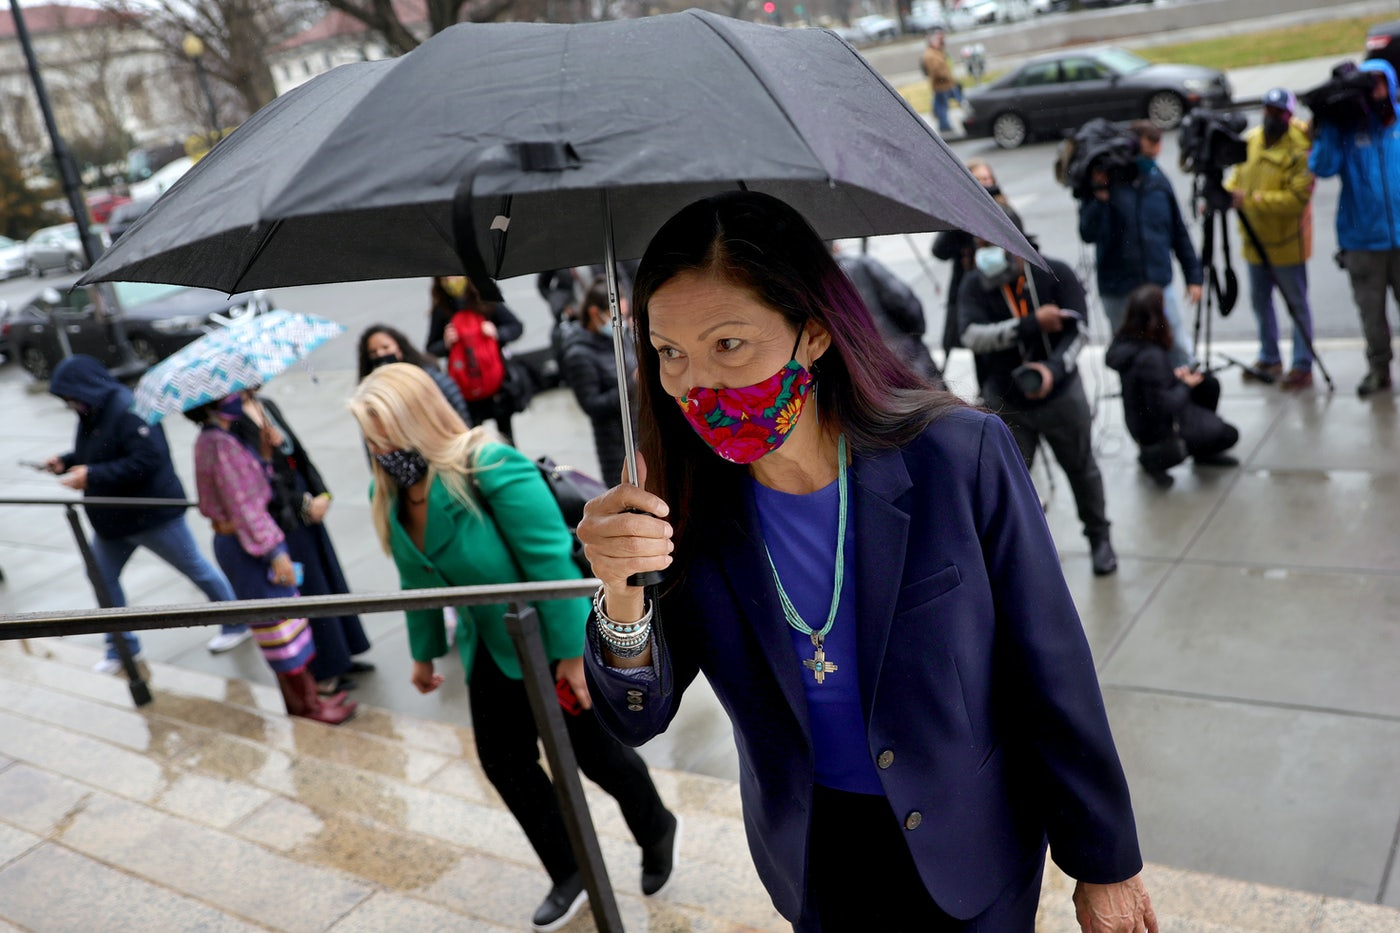 Deb Haaland walks up steps holding an umbrella.